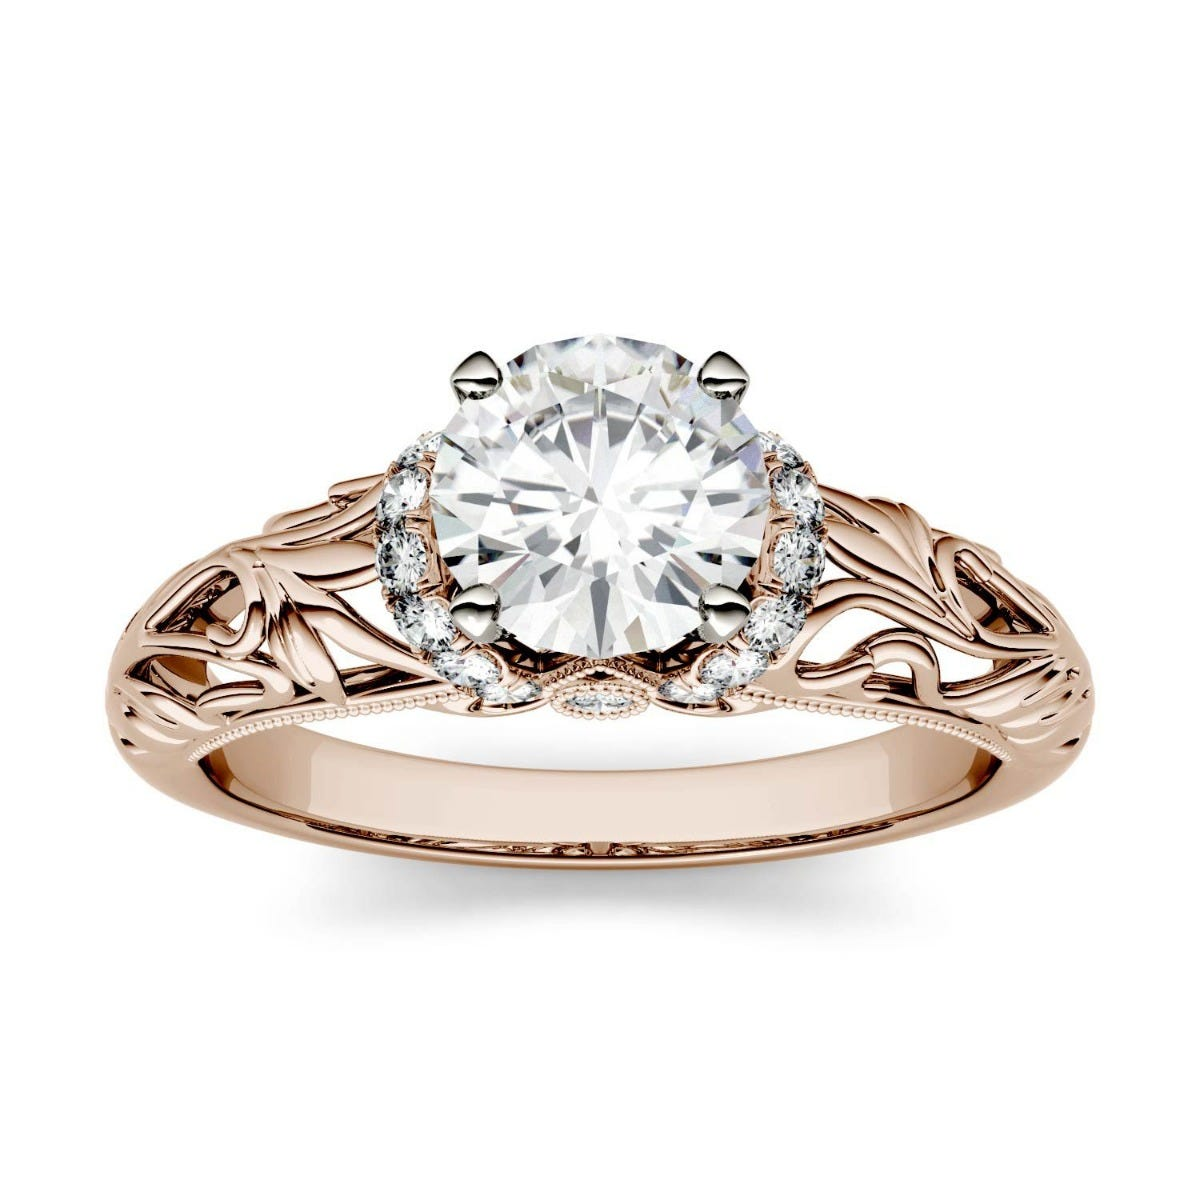 Forever One Round Colorless Moissanite Floral Band Solitaire with Side Accents Engagement Ring in 14K Rose Gold